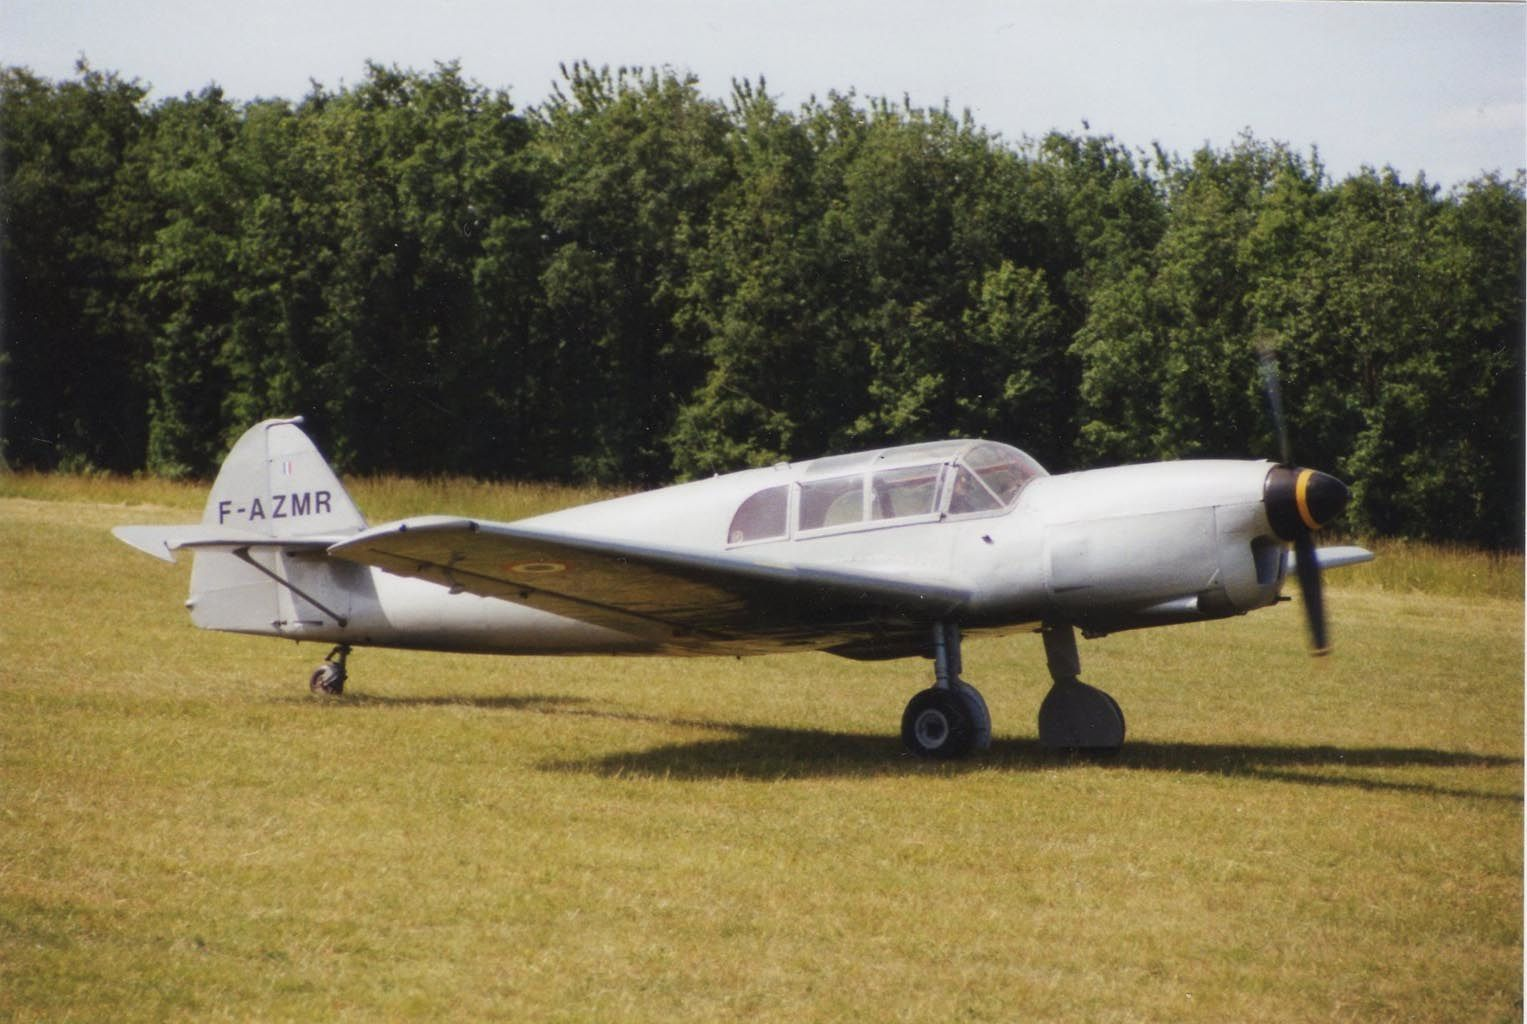 Le Nord 1002 F-AZMR